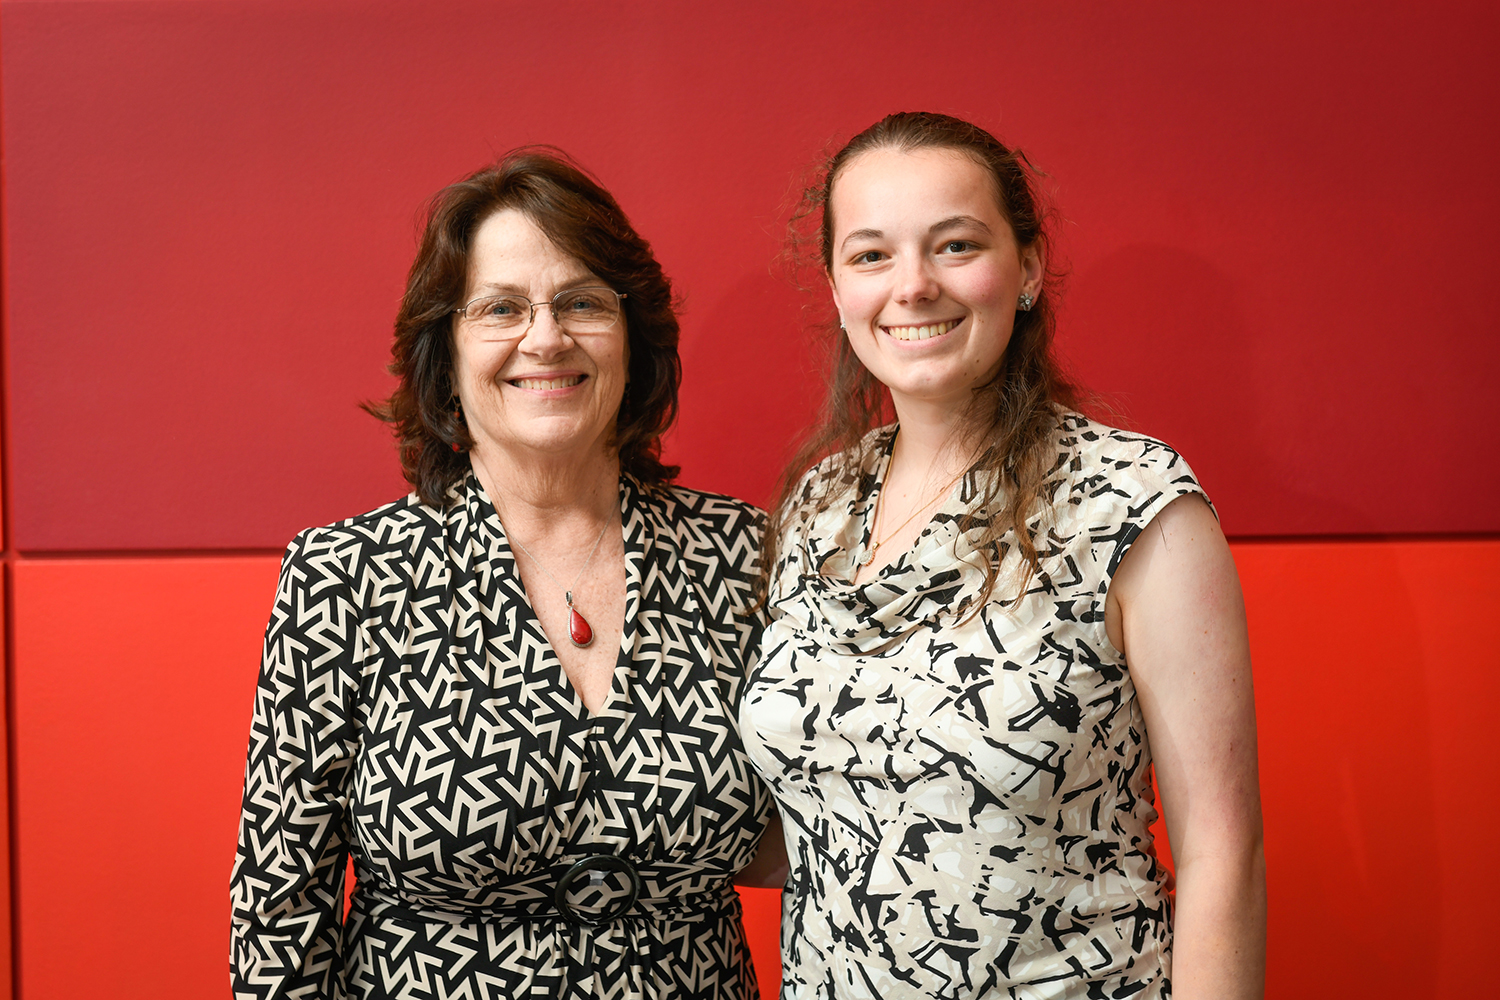 Suzanne Gordon, president of the NCState Engineering Board of Directors, meets with a scholarship recipient at the 2019 Engineering Annual Endowment Dinner.